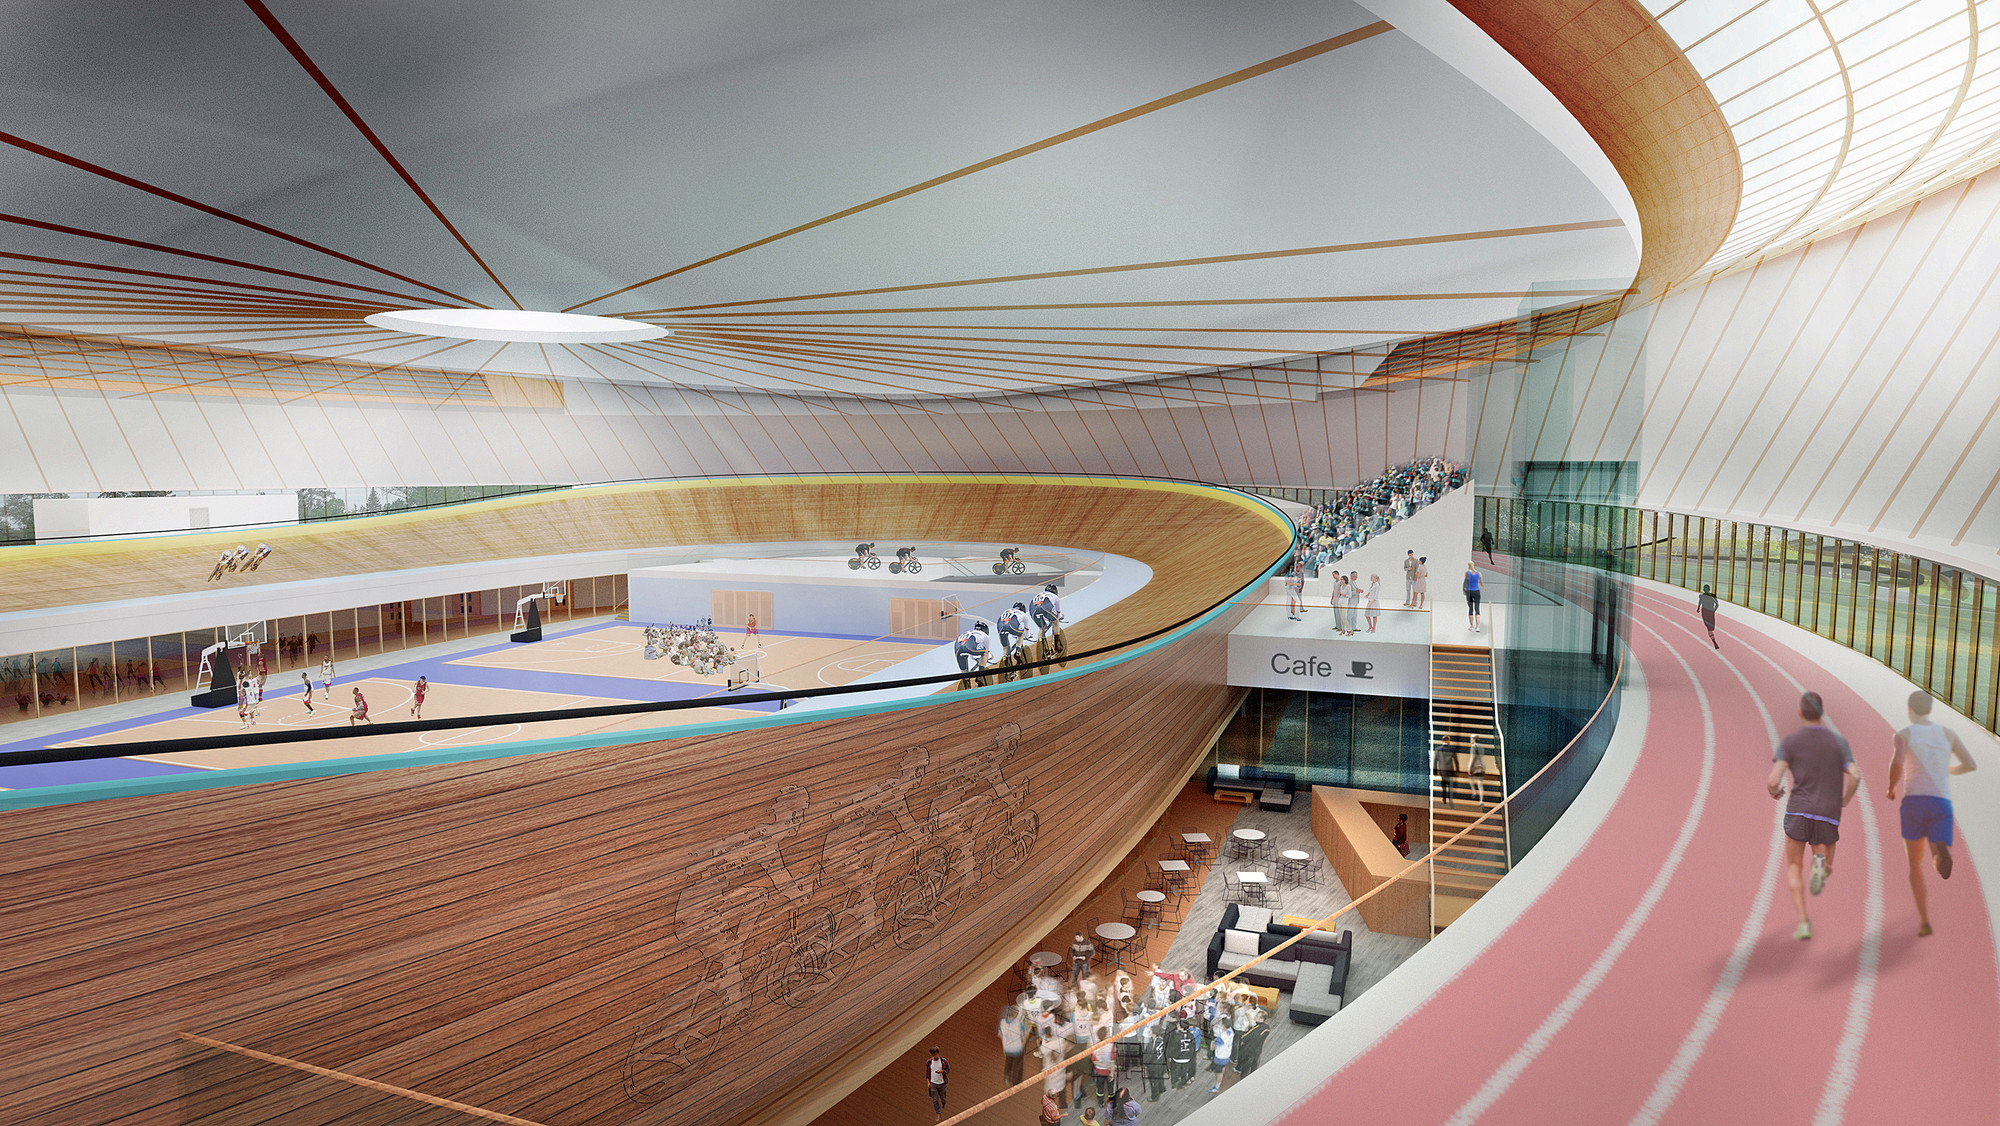 FaulknerBrowns Propose Community Velodrome Scheme in Canada, Interior Visualisation. Image Courtesy of FaulknerBrowns Architects